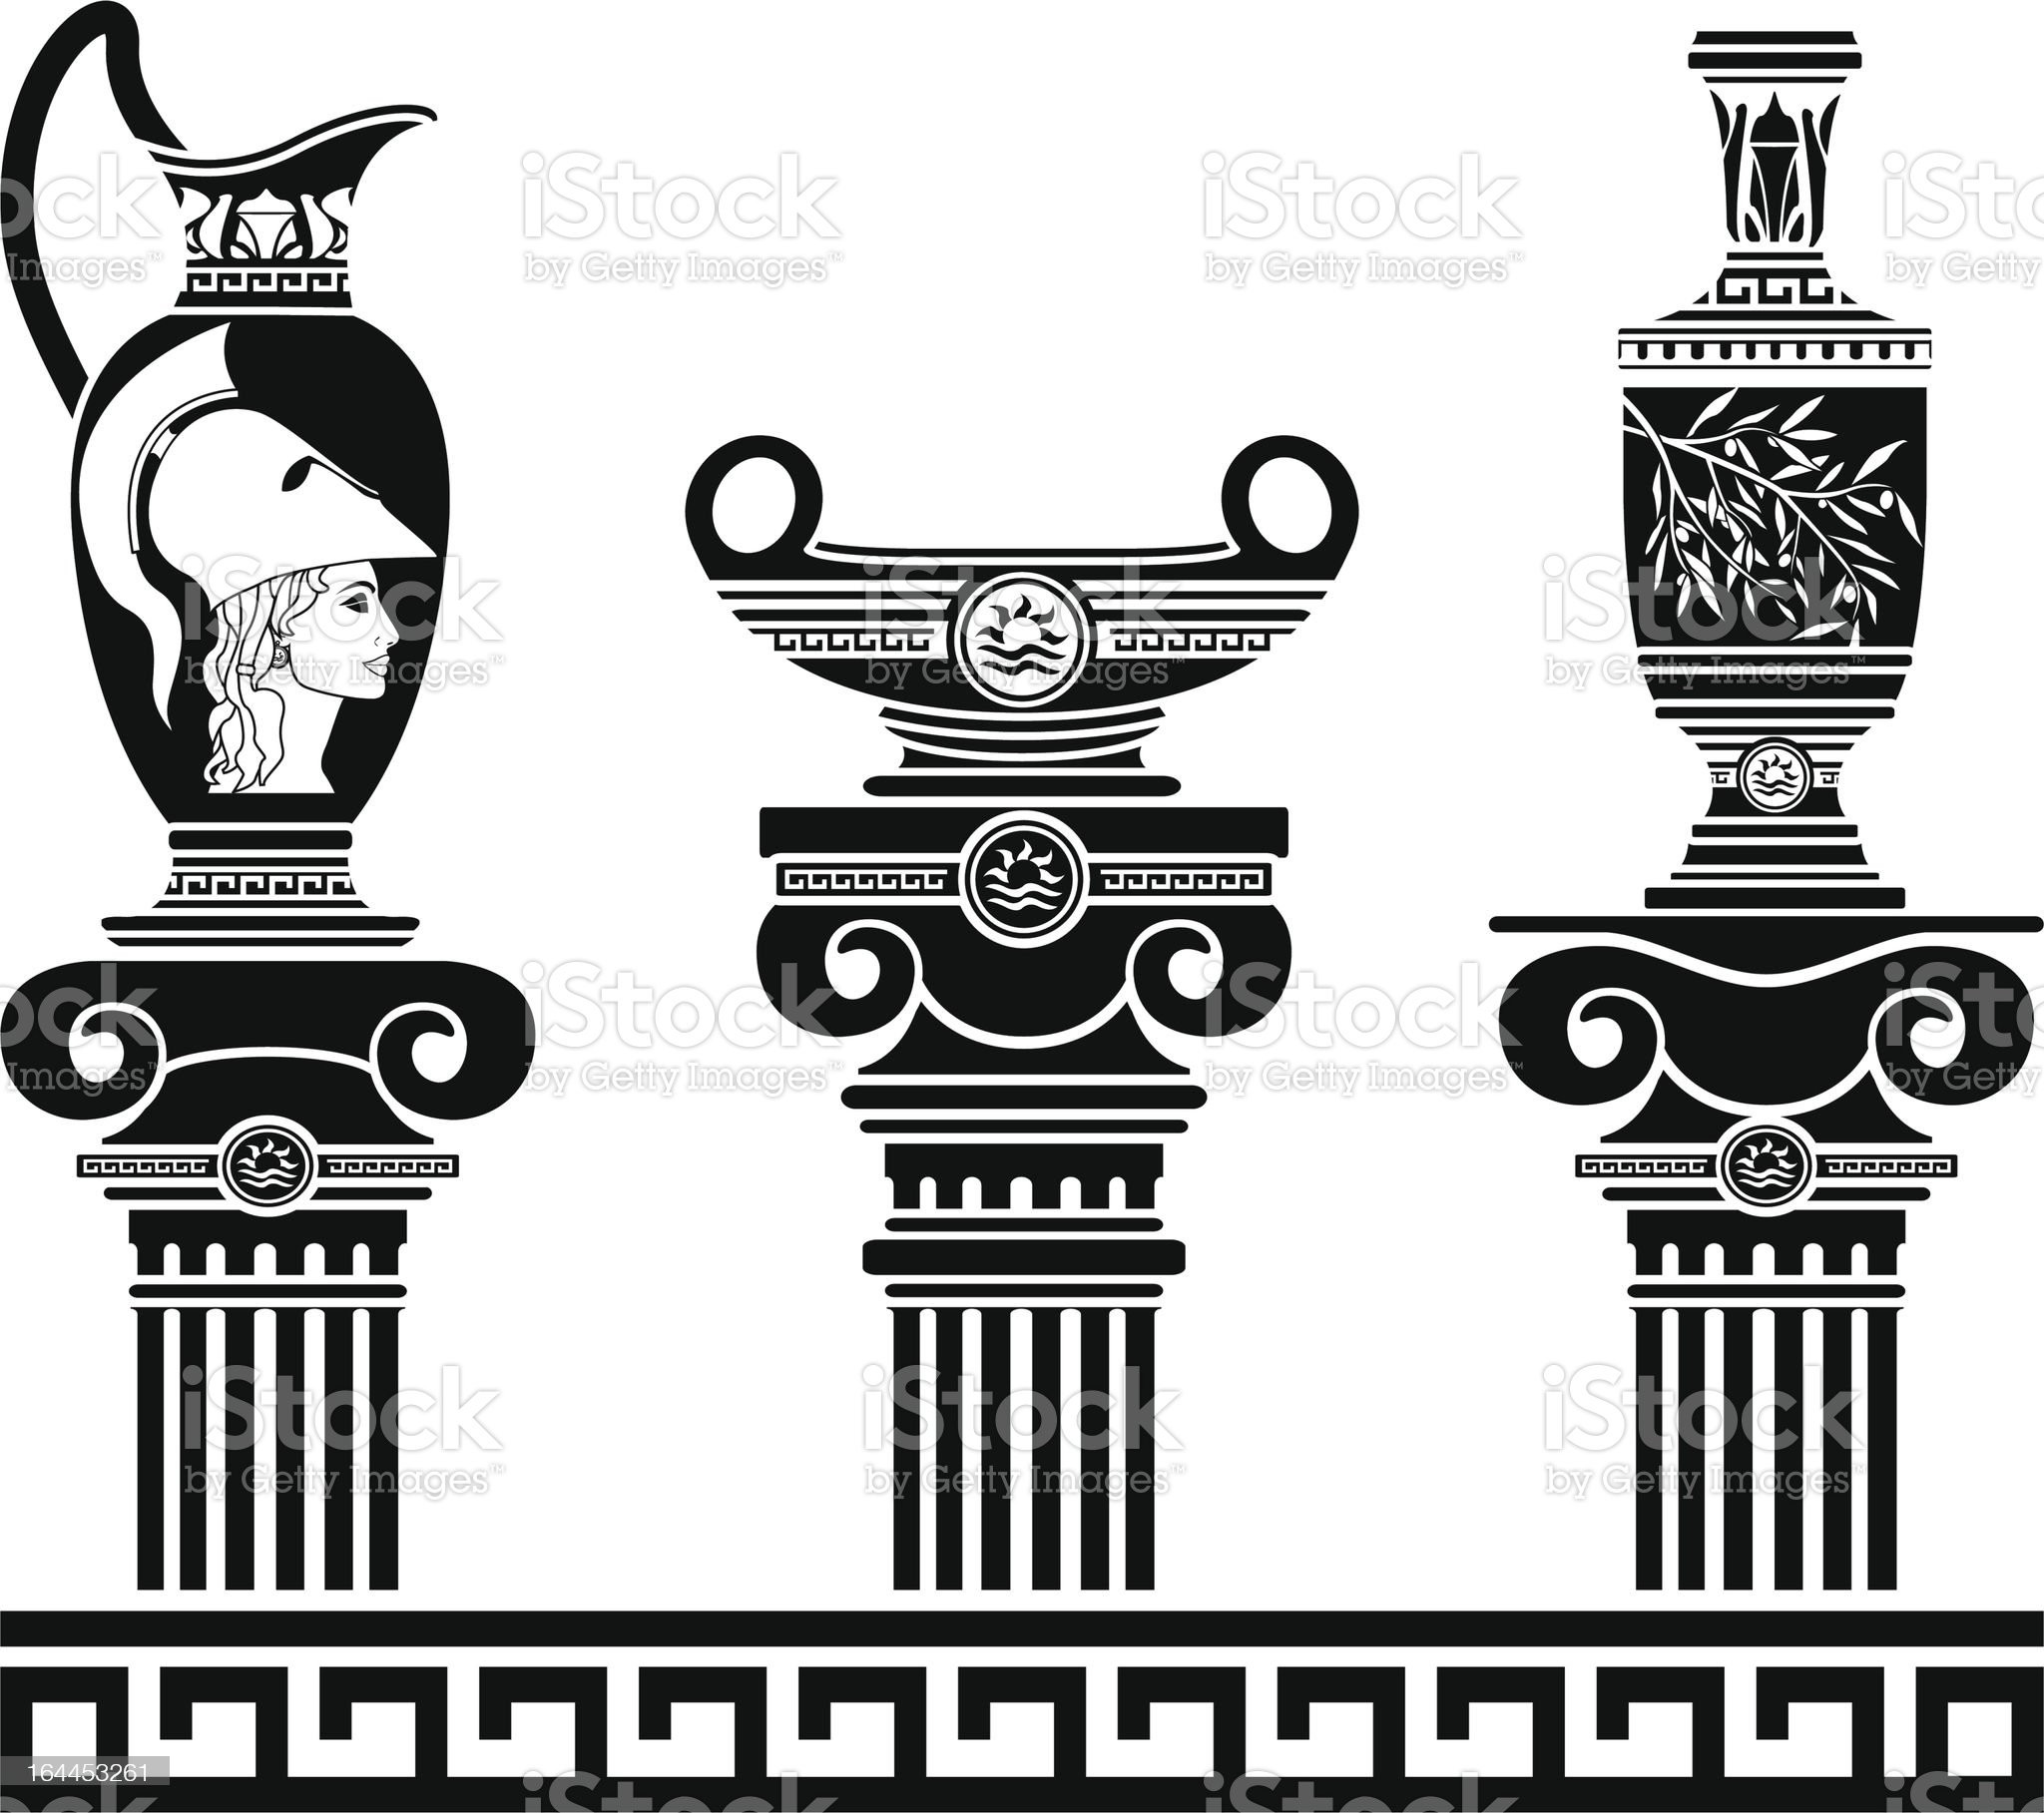 set of hellenic vases and ionic columns royalty-free stock vector art